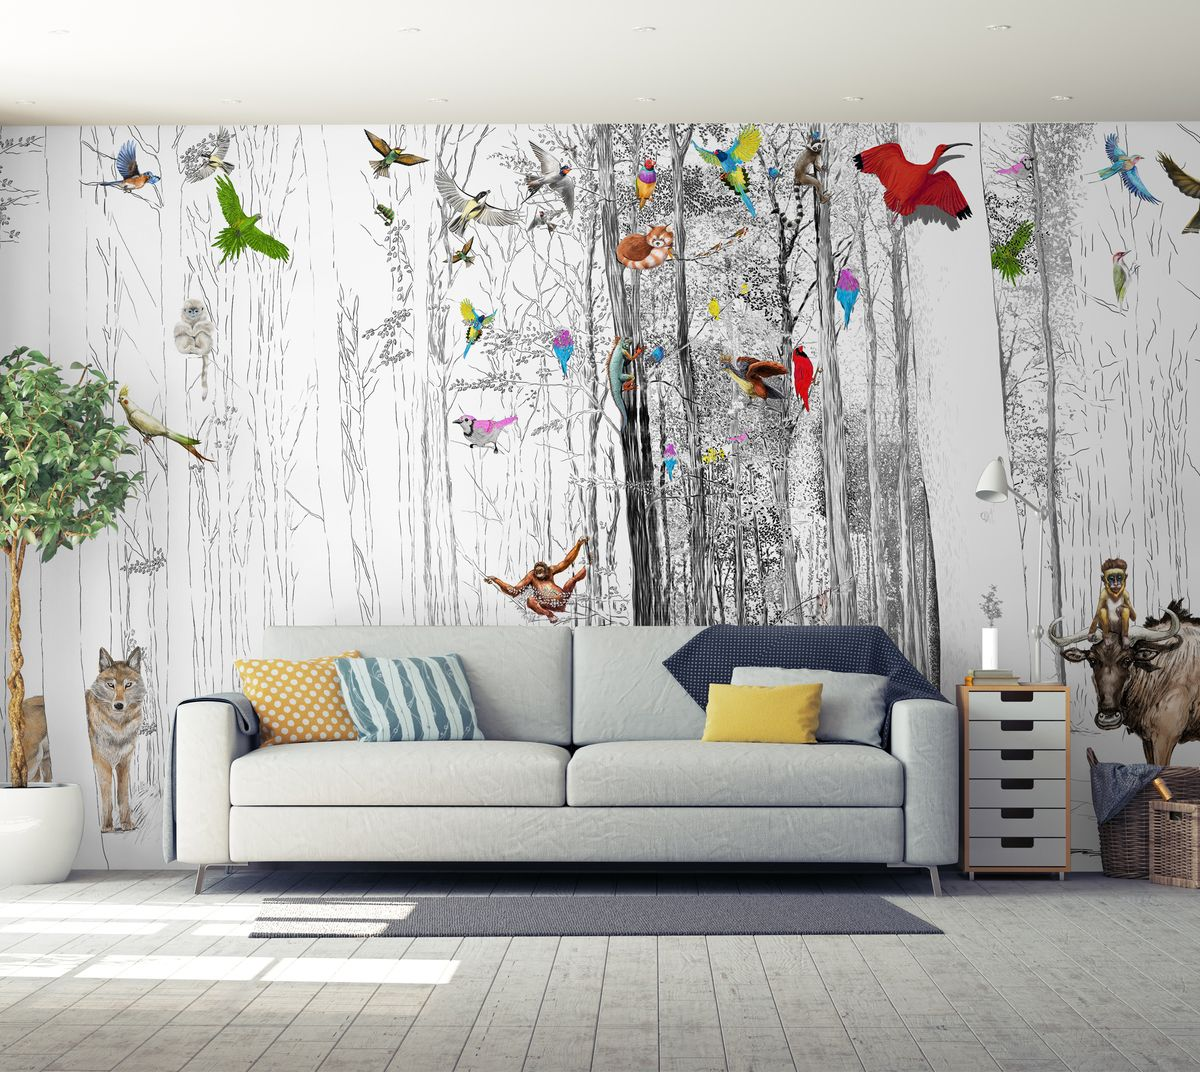 dessins incr ation rev tement mural et papier peint. Black Bedroom Furniture Sets. Home Design Ideas